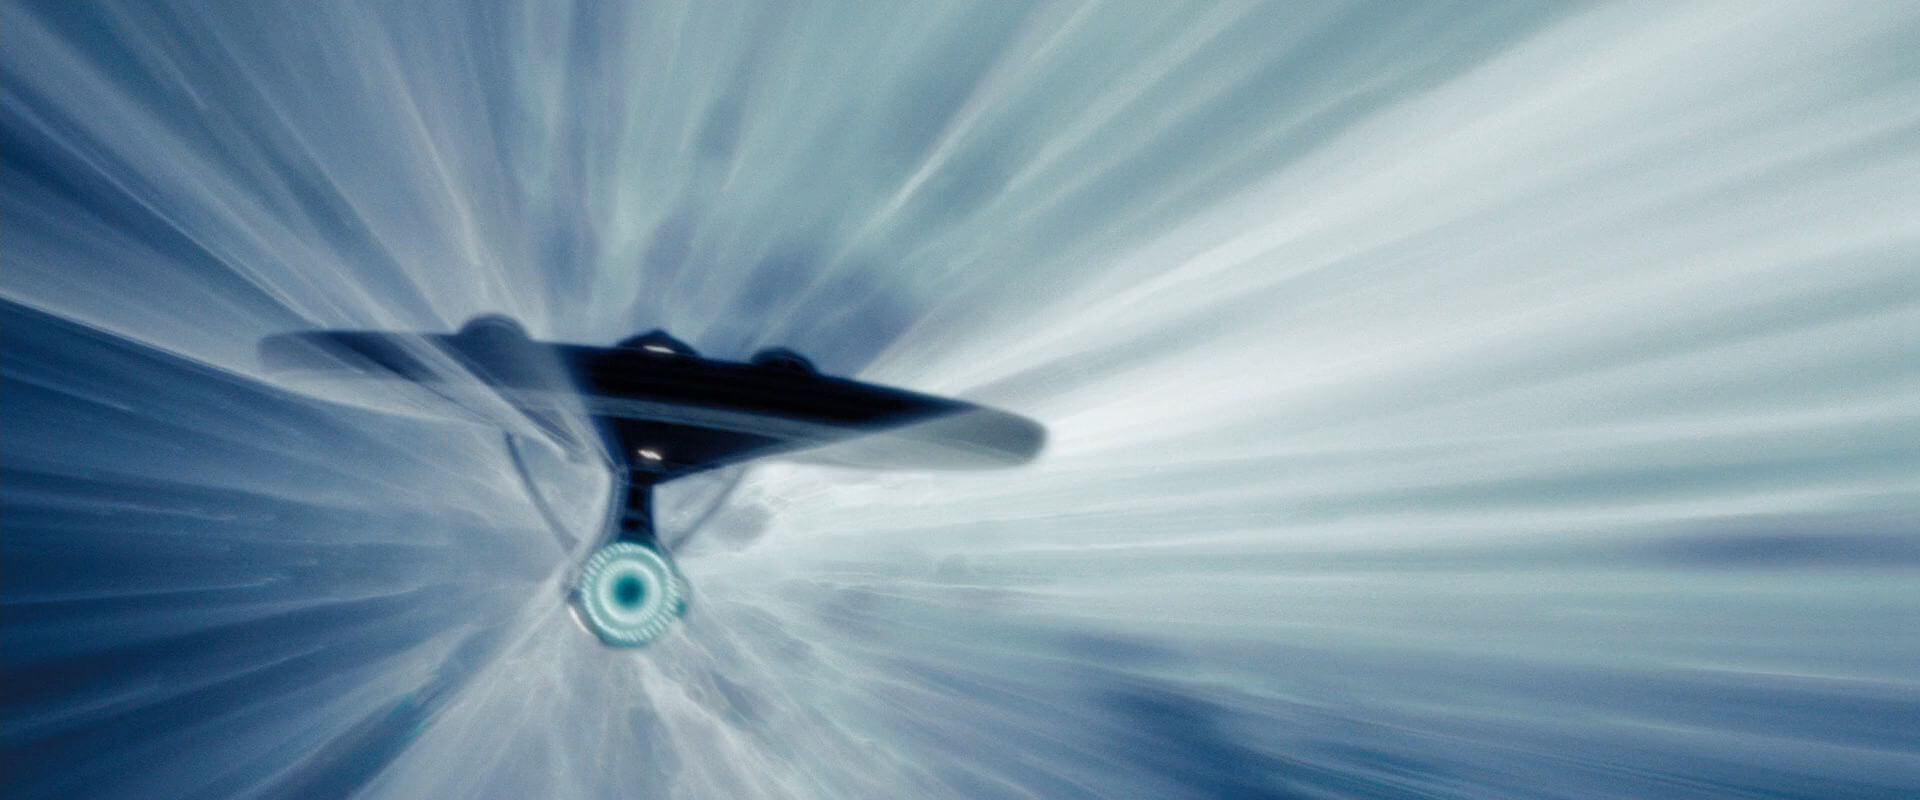 Raumschiff Enterprise